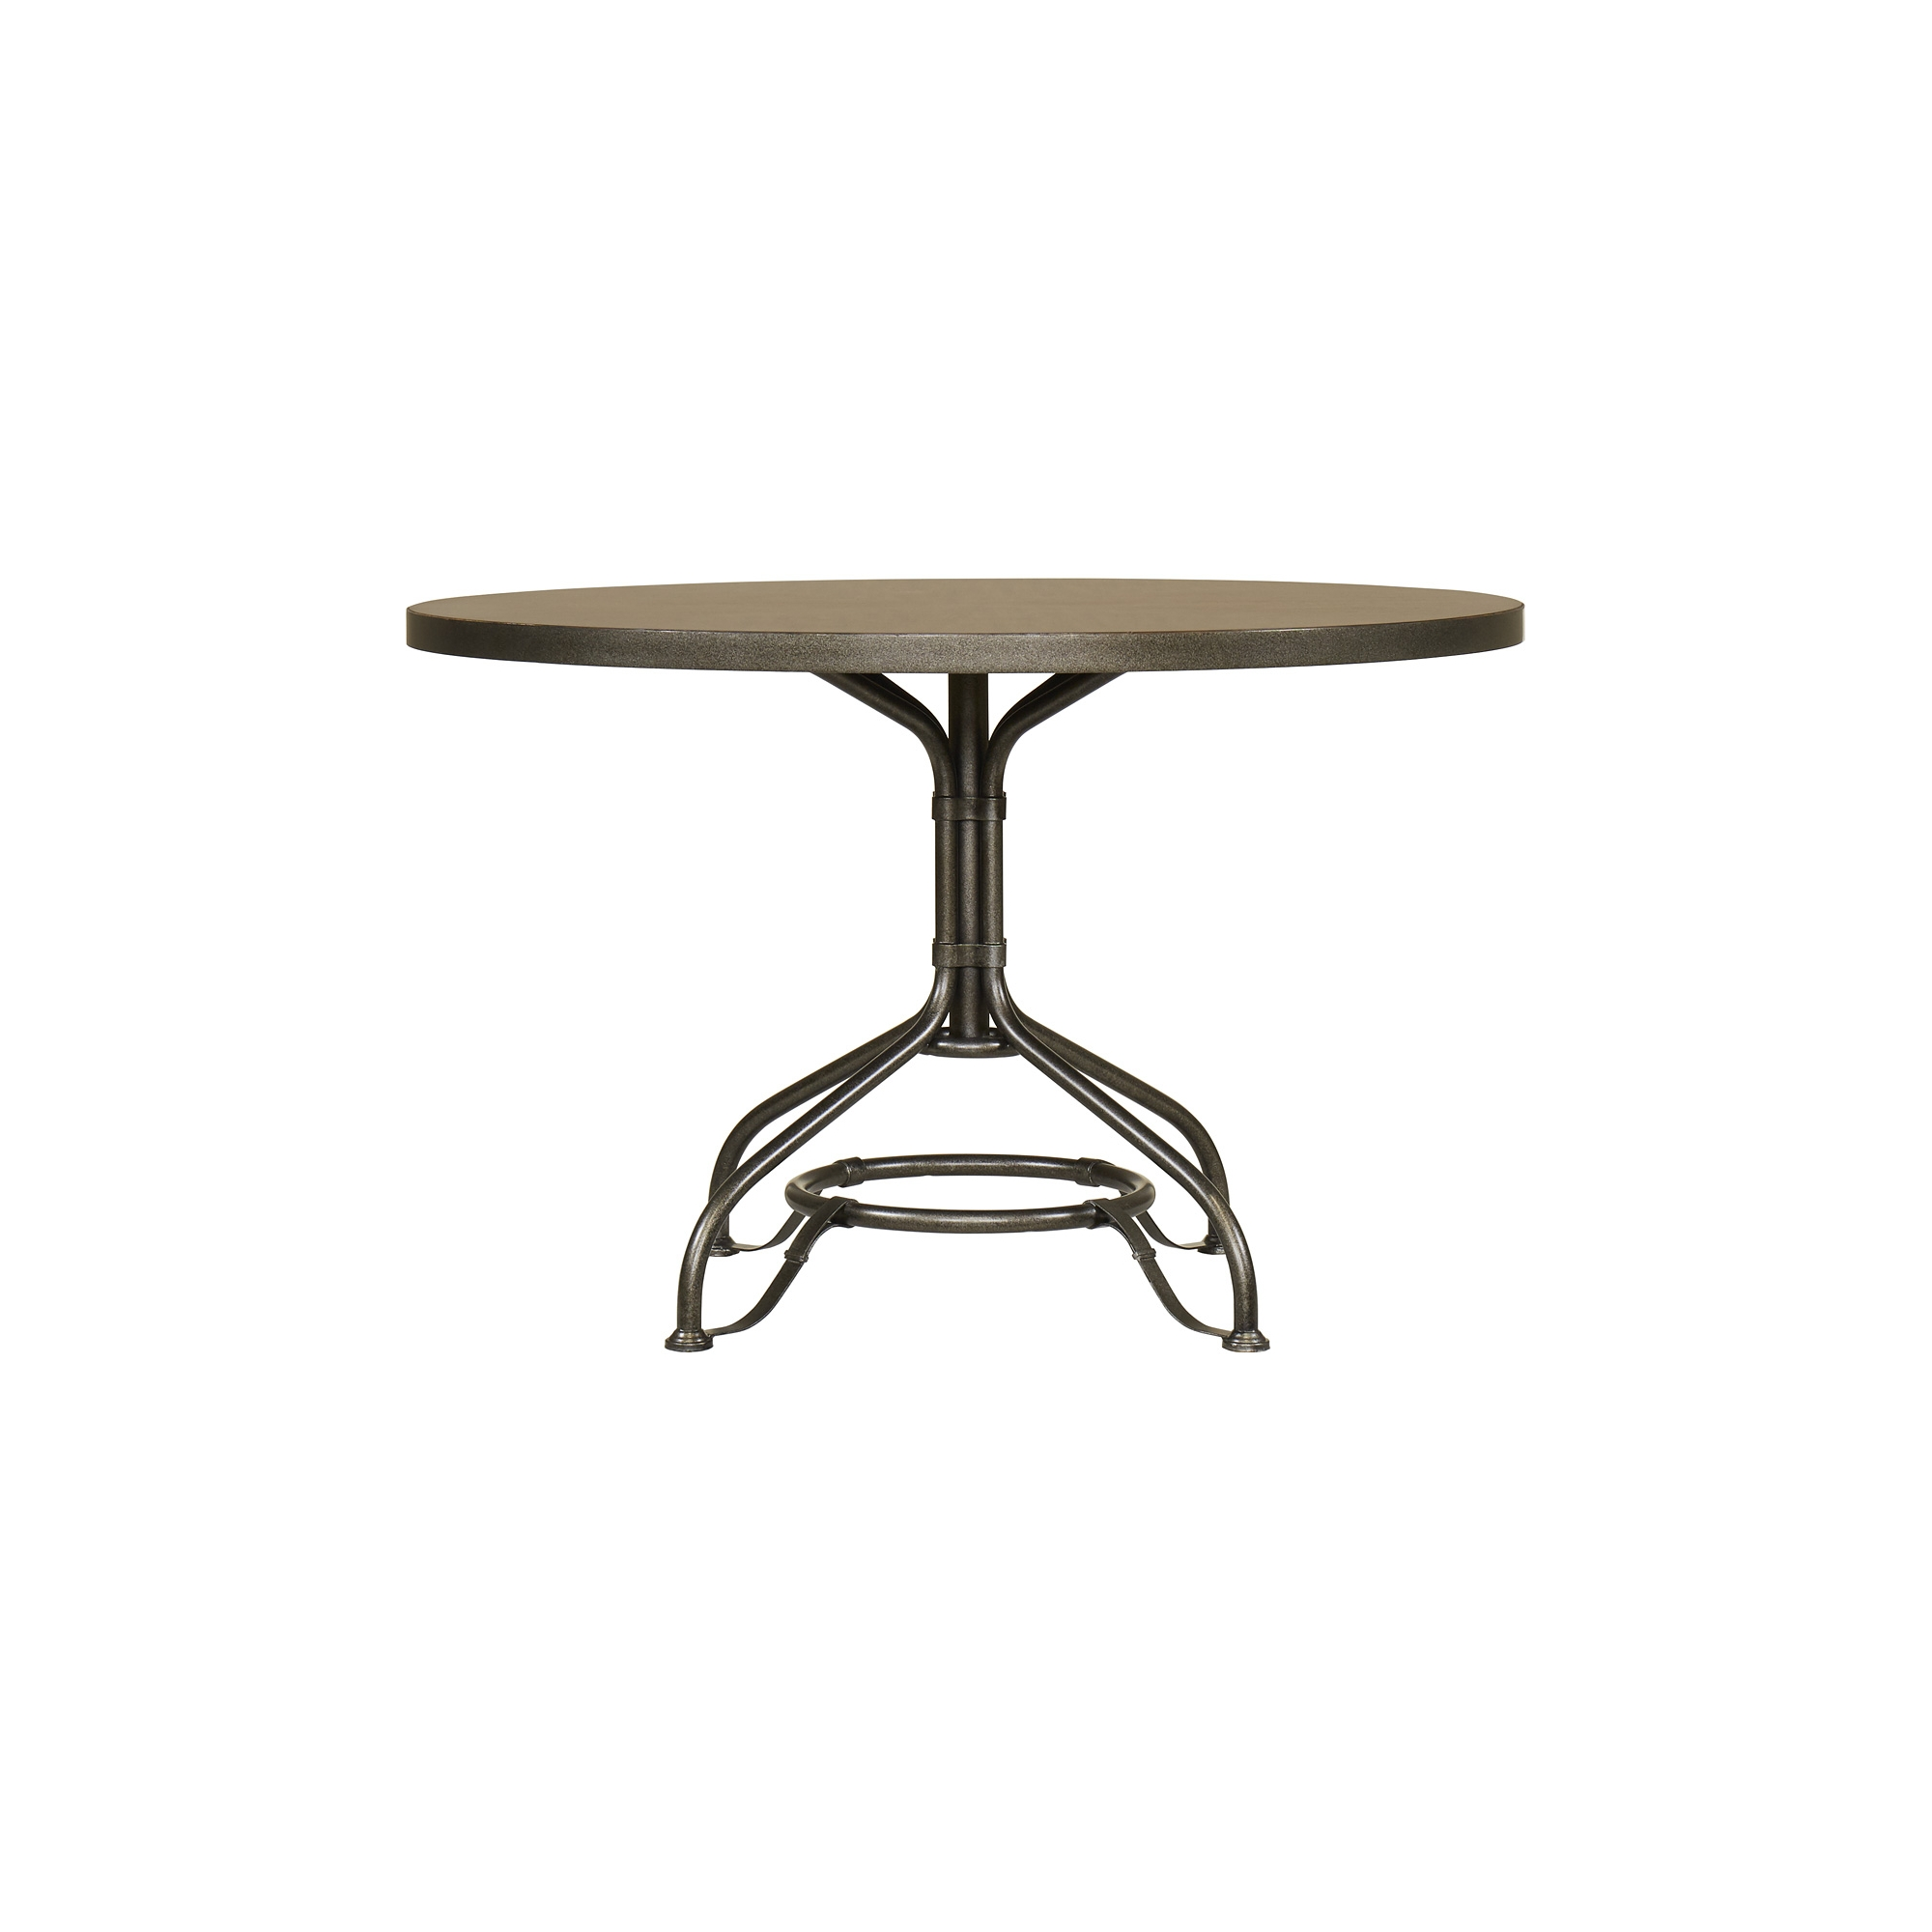 printers alley dining table havertys kitchen tables Main Printers Alley Dining Table Image